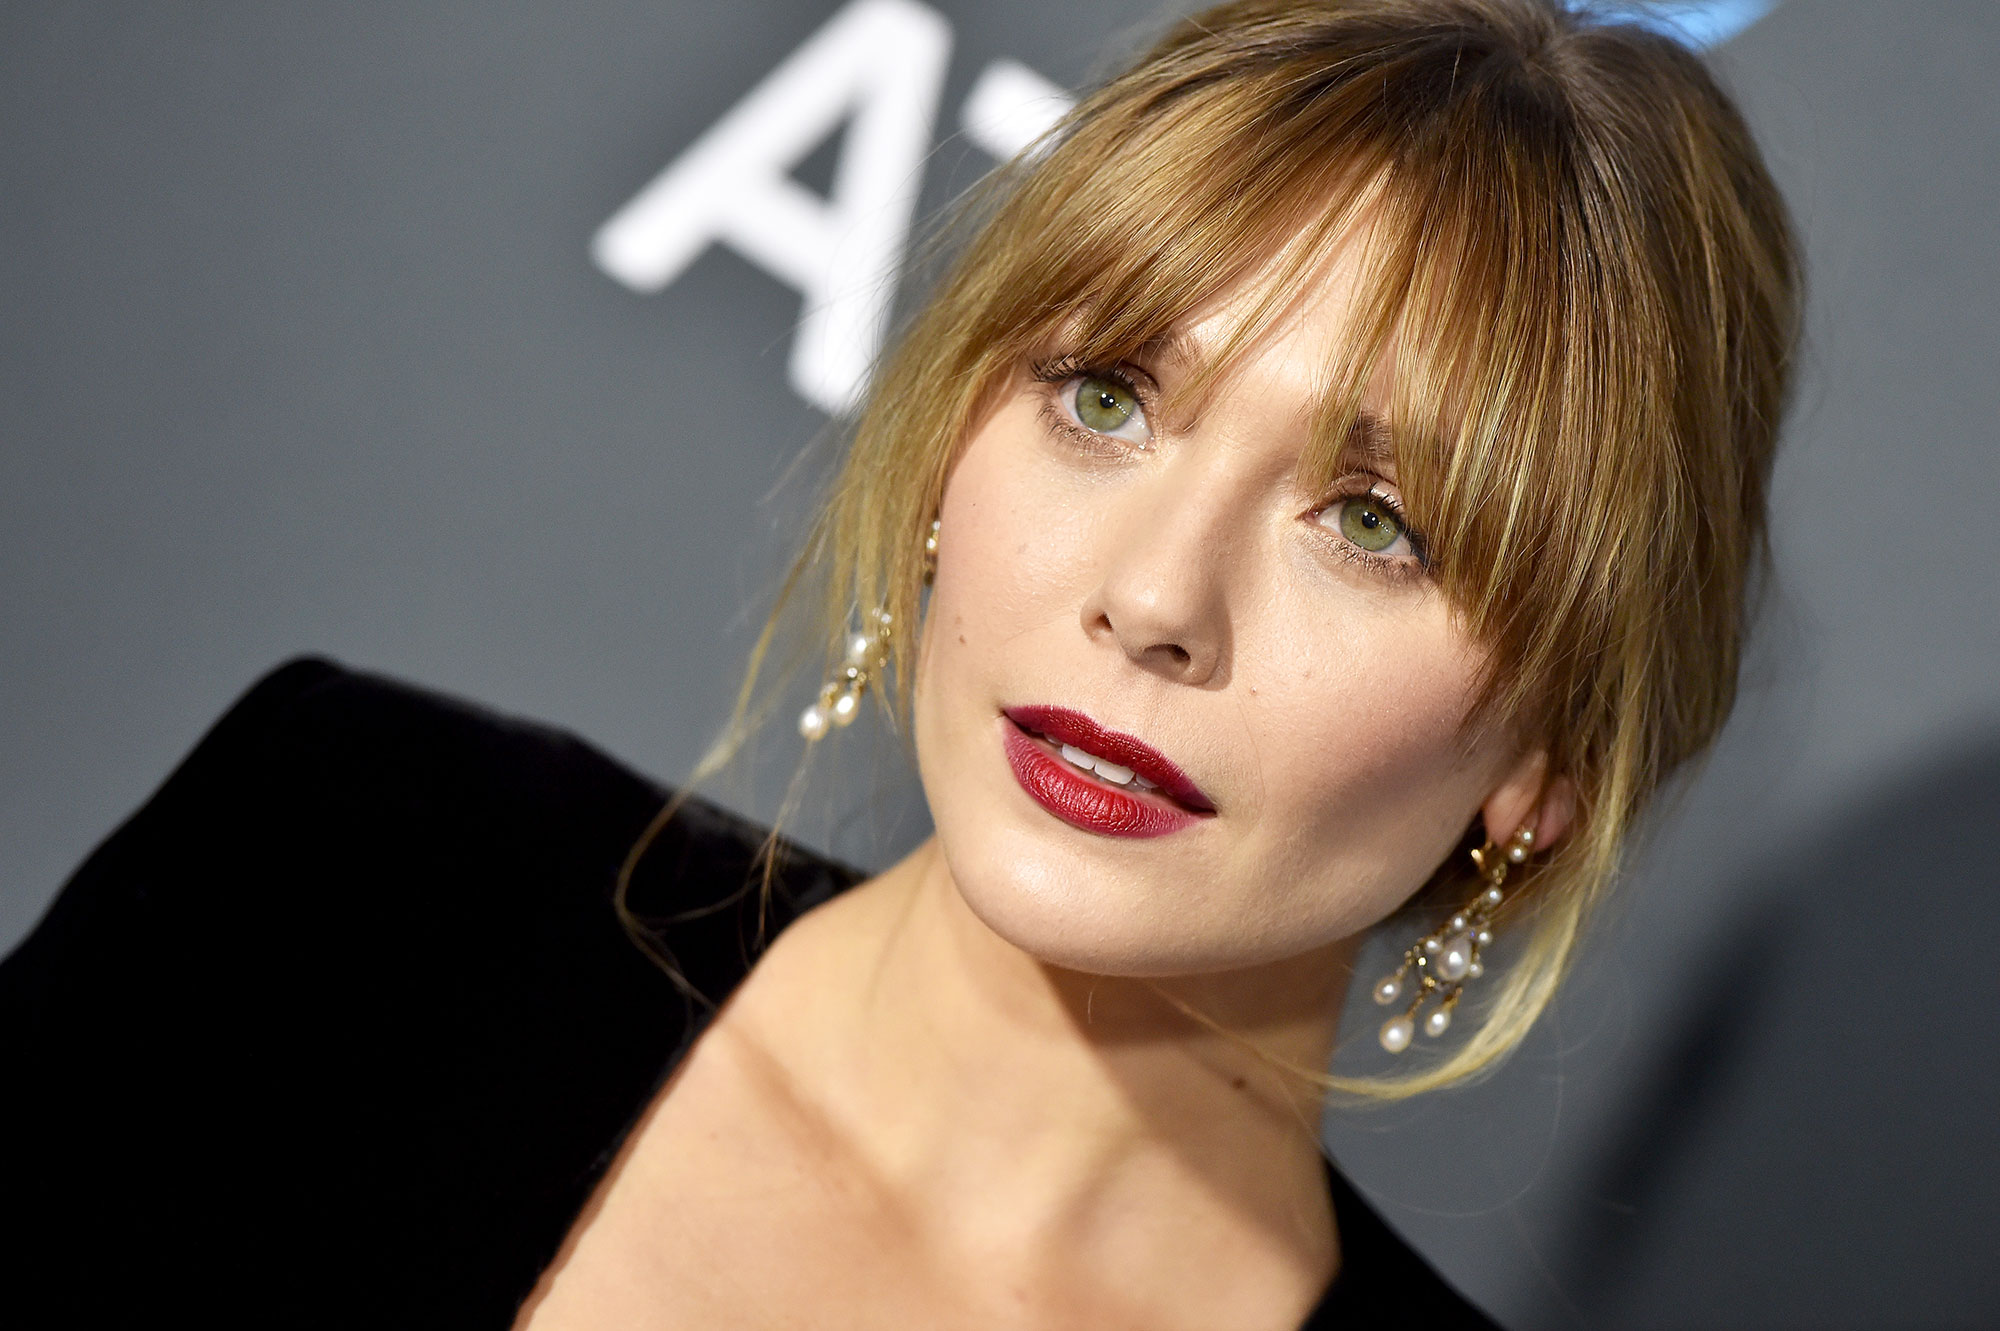 Elizabeth Olsen Critics' Choice Awards 2019 - With sultry curtain bangs by mane man Mark Townsend using Dove products and a modern nude eye and brick red lips courtesy of makeup artist Pati Dubroff using Chanel.